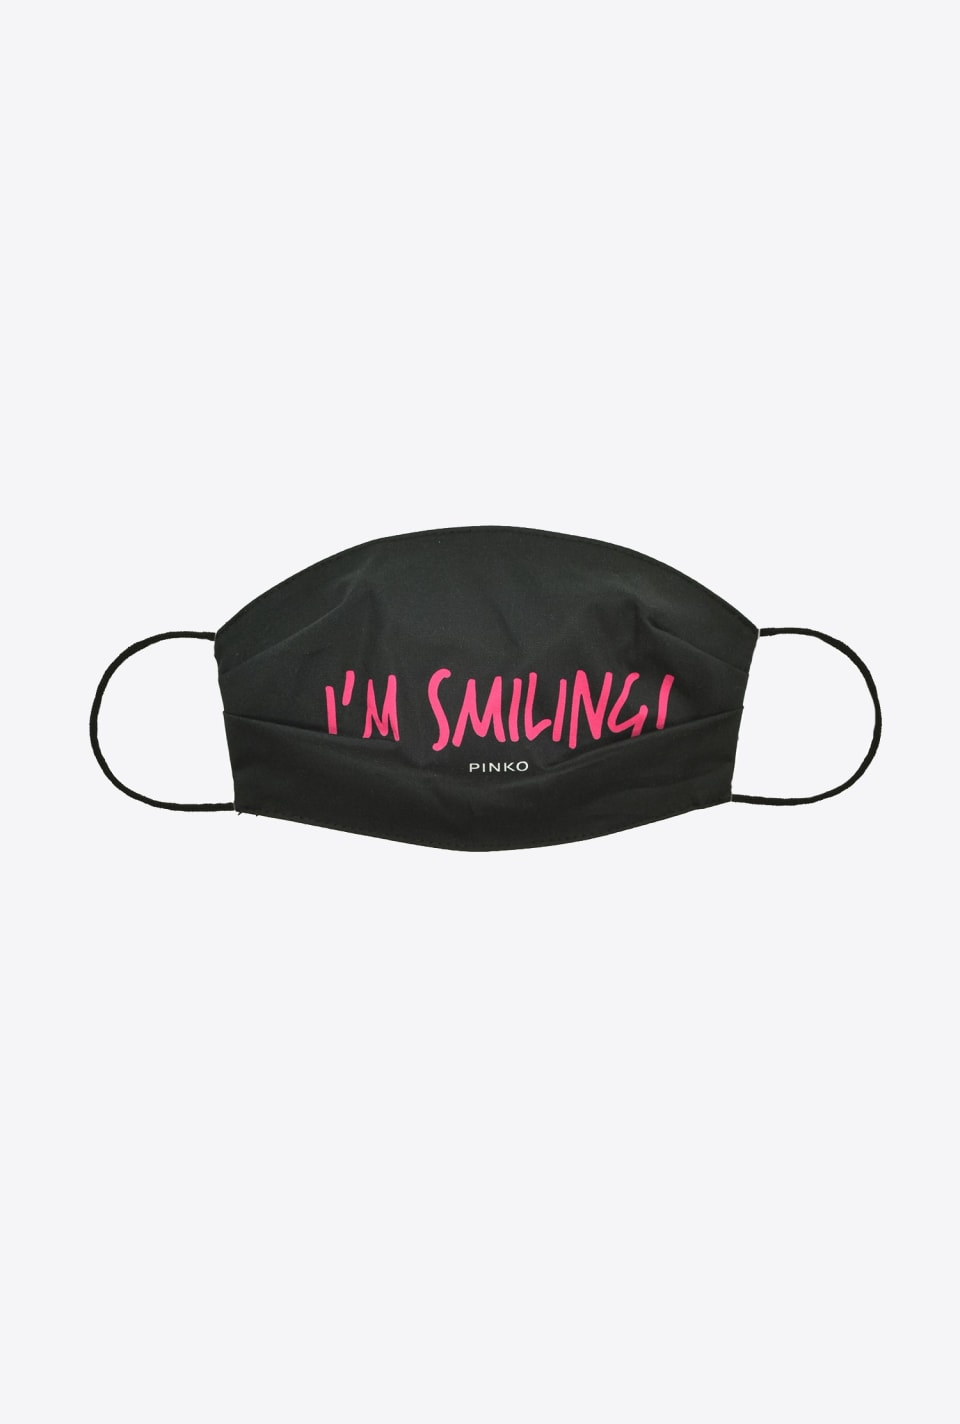 """I am smiling!"" face mask - Pinko"